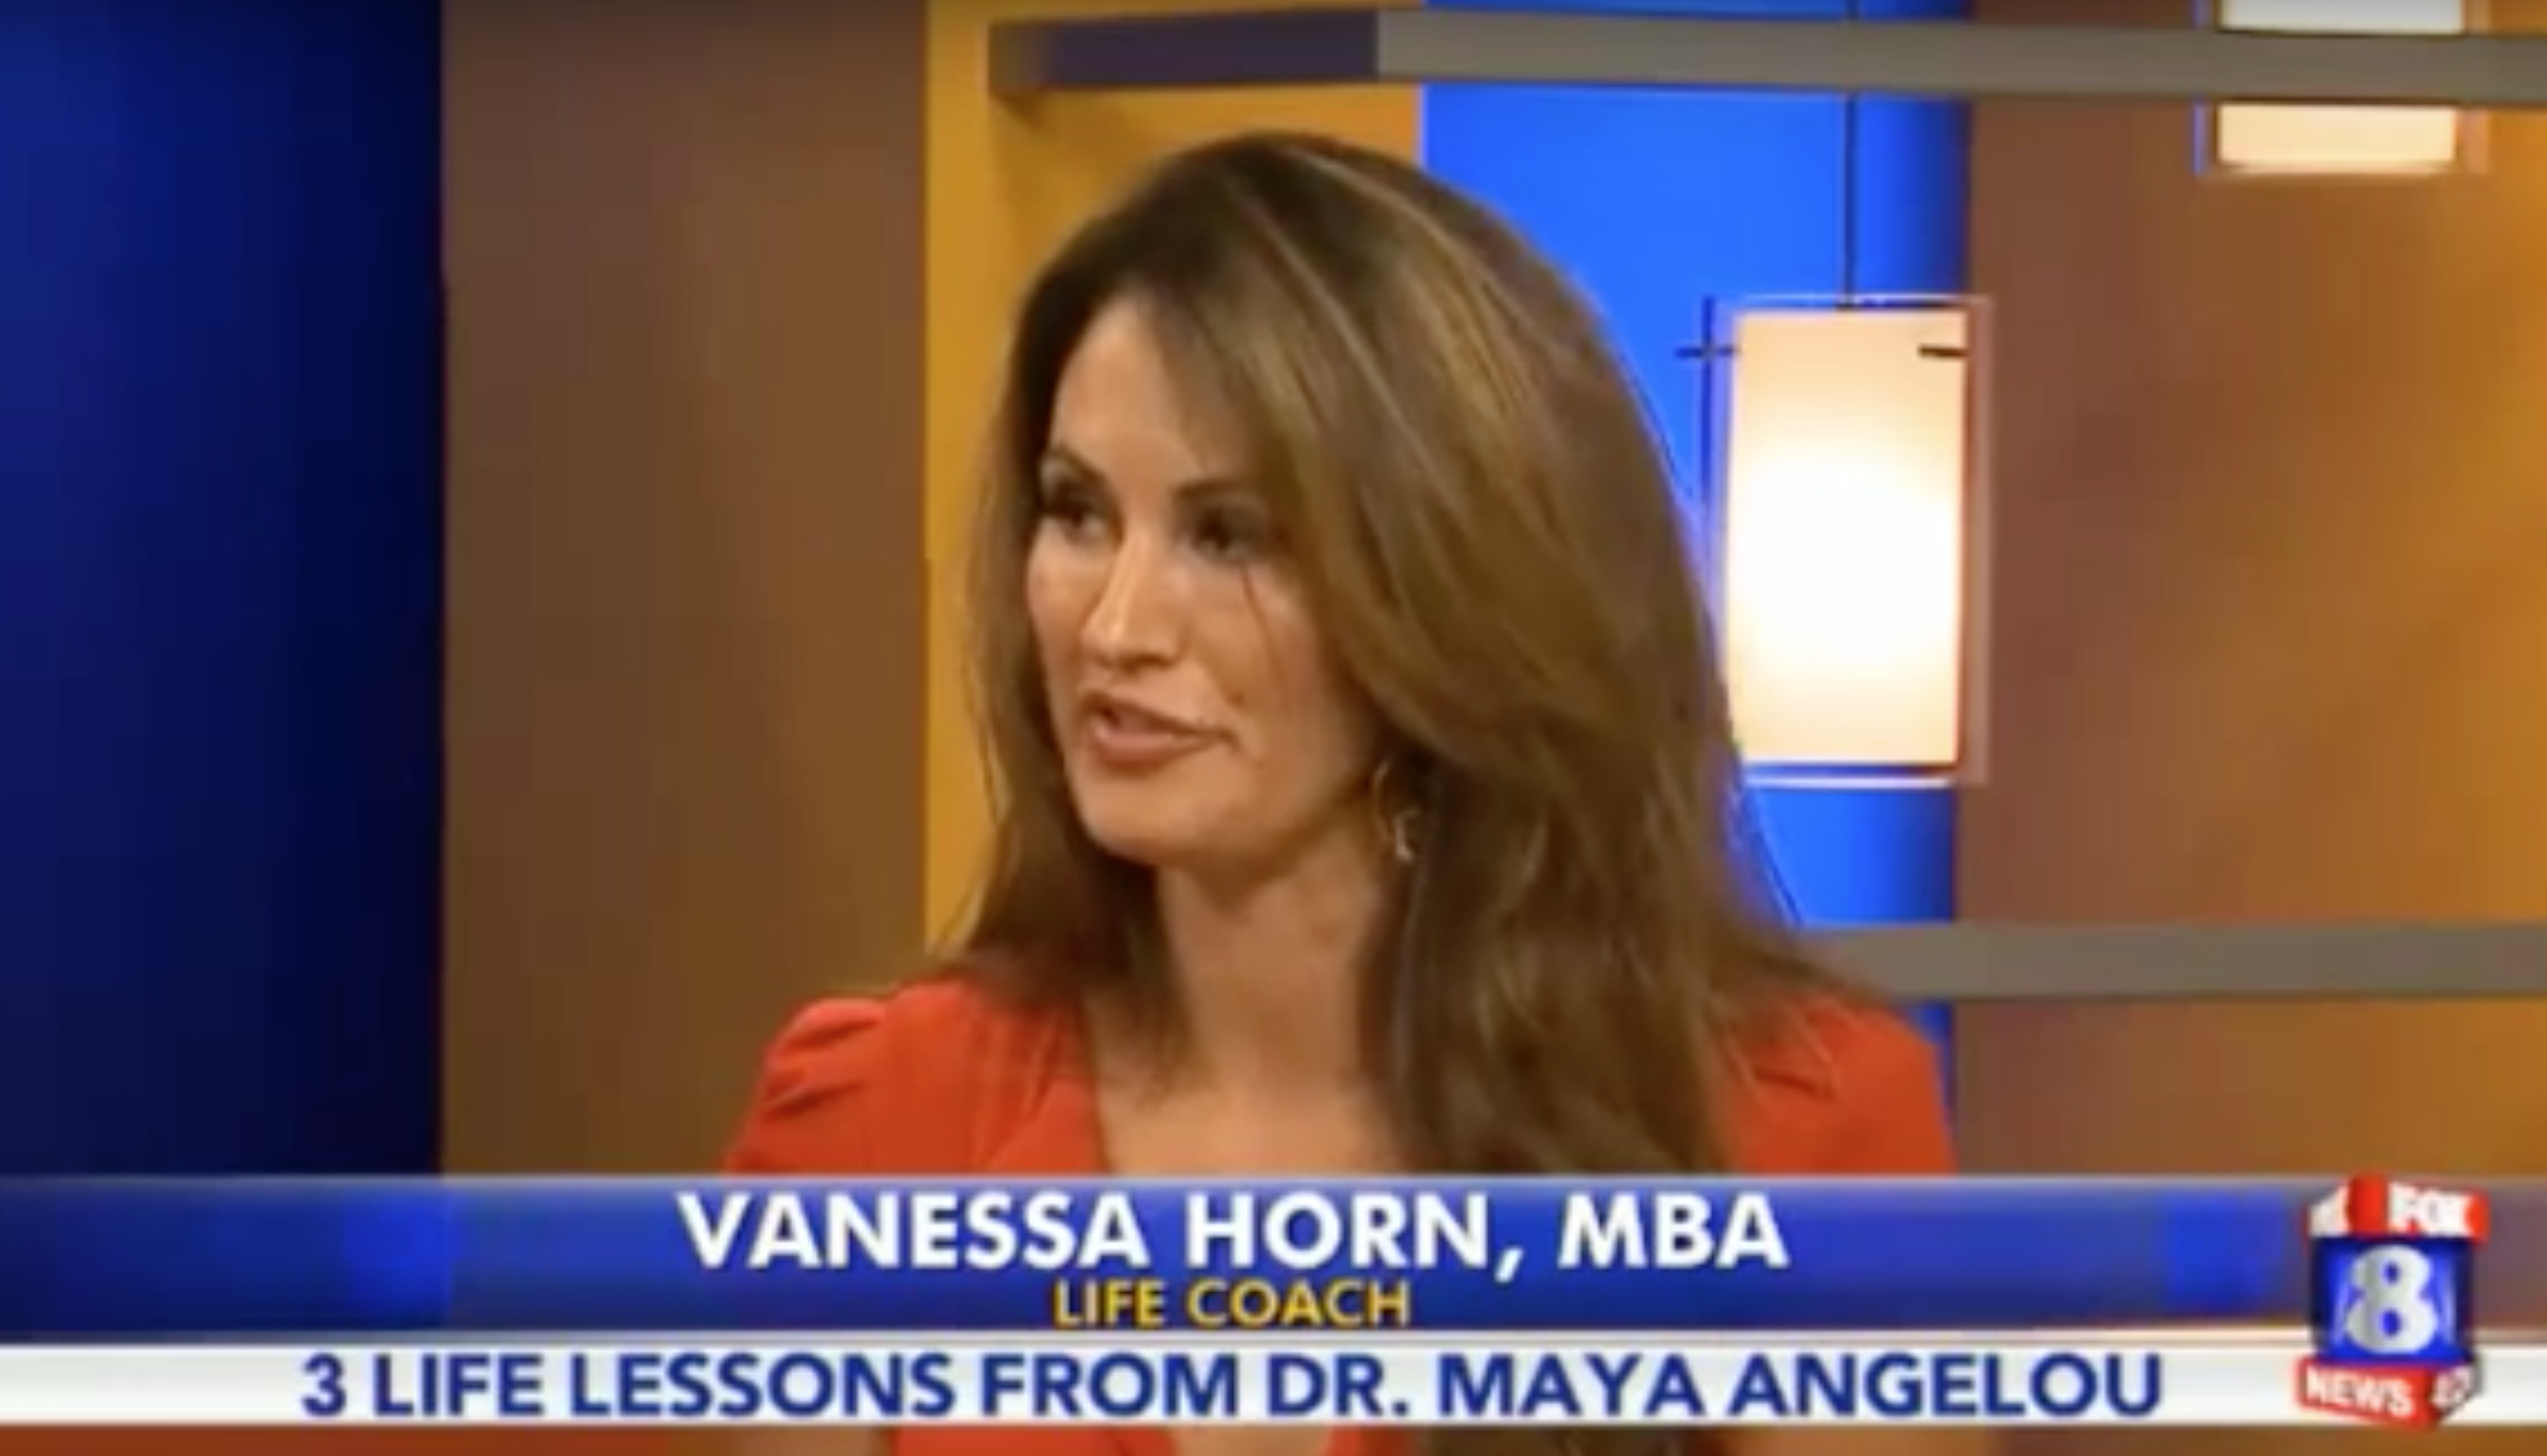 Vanessa Horn on Fox 8